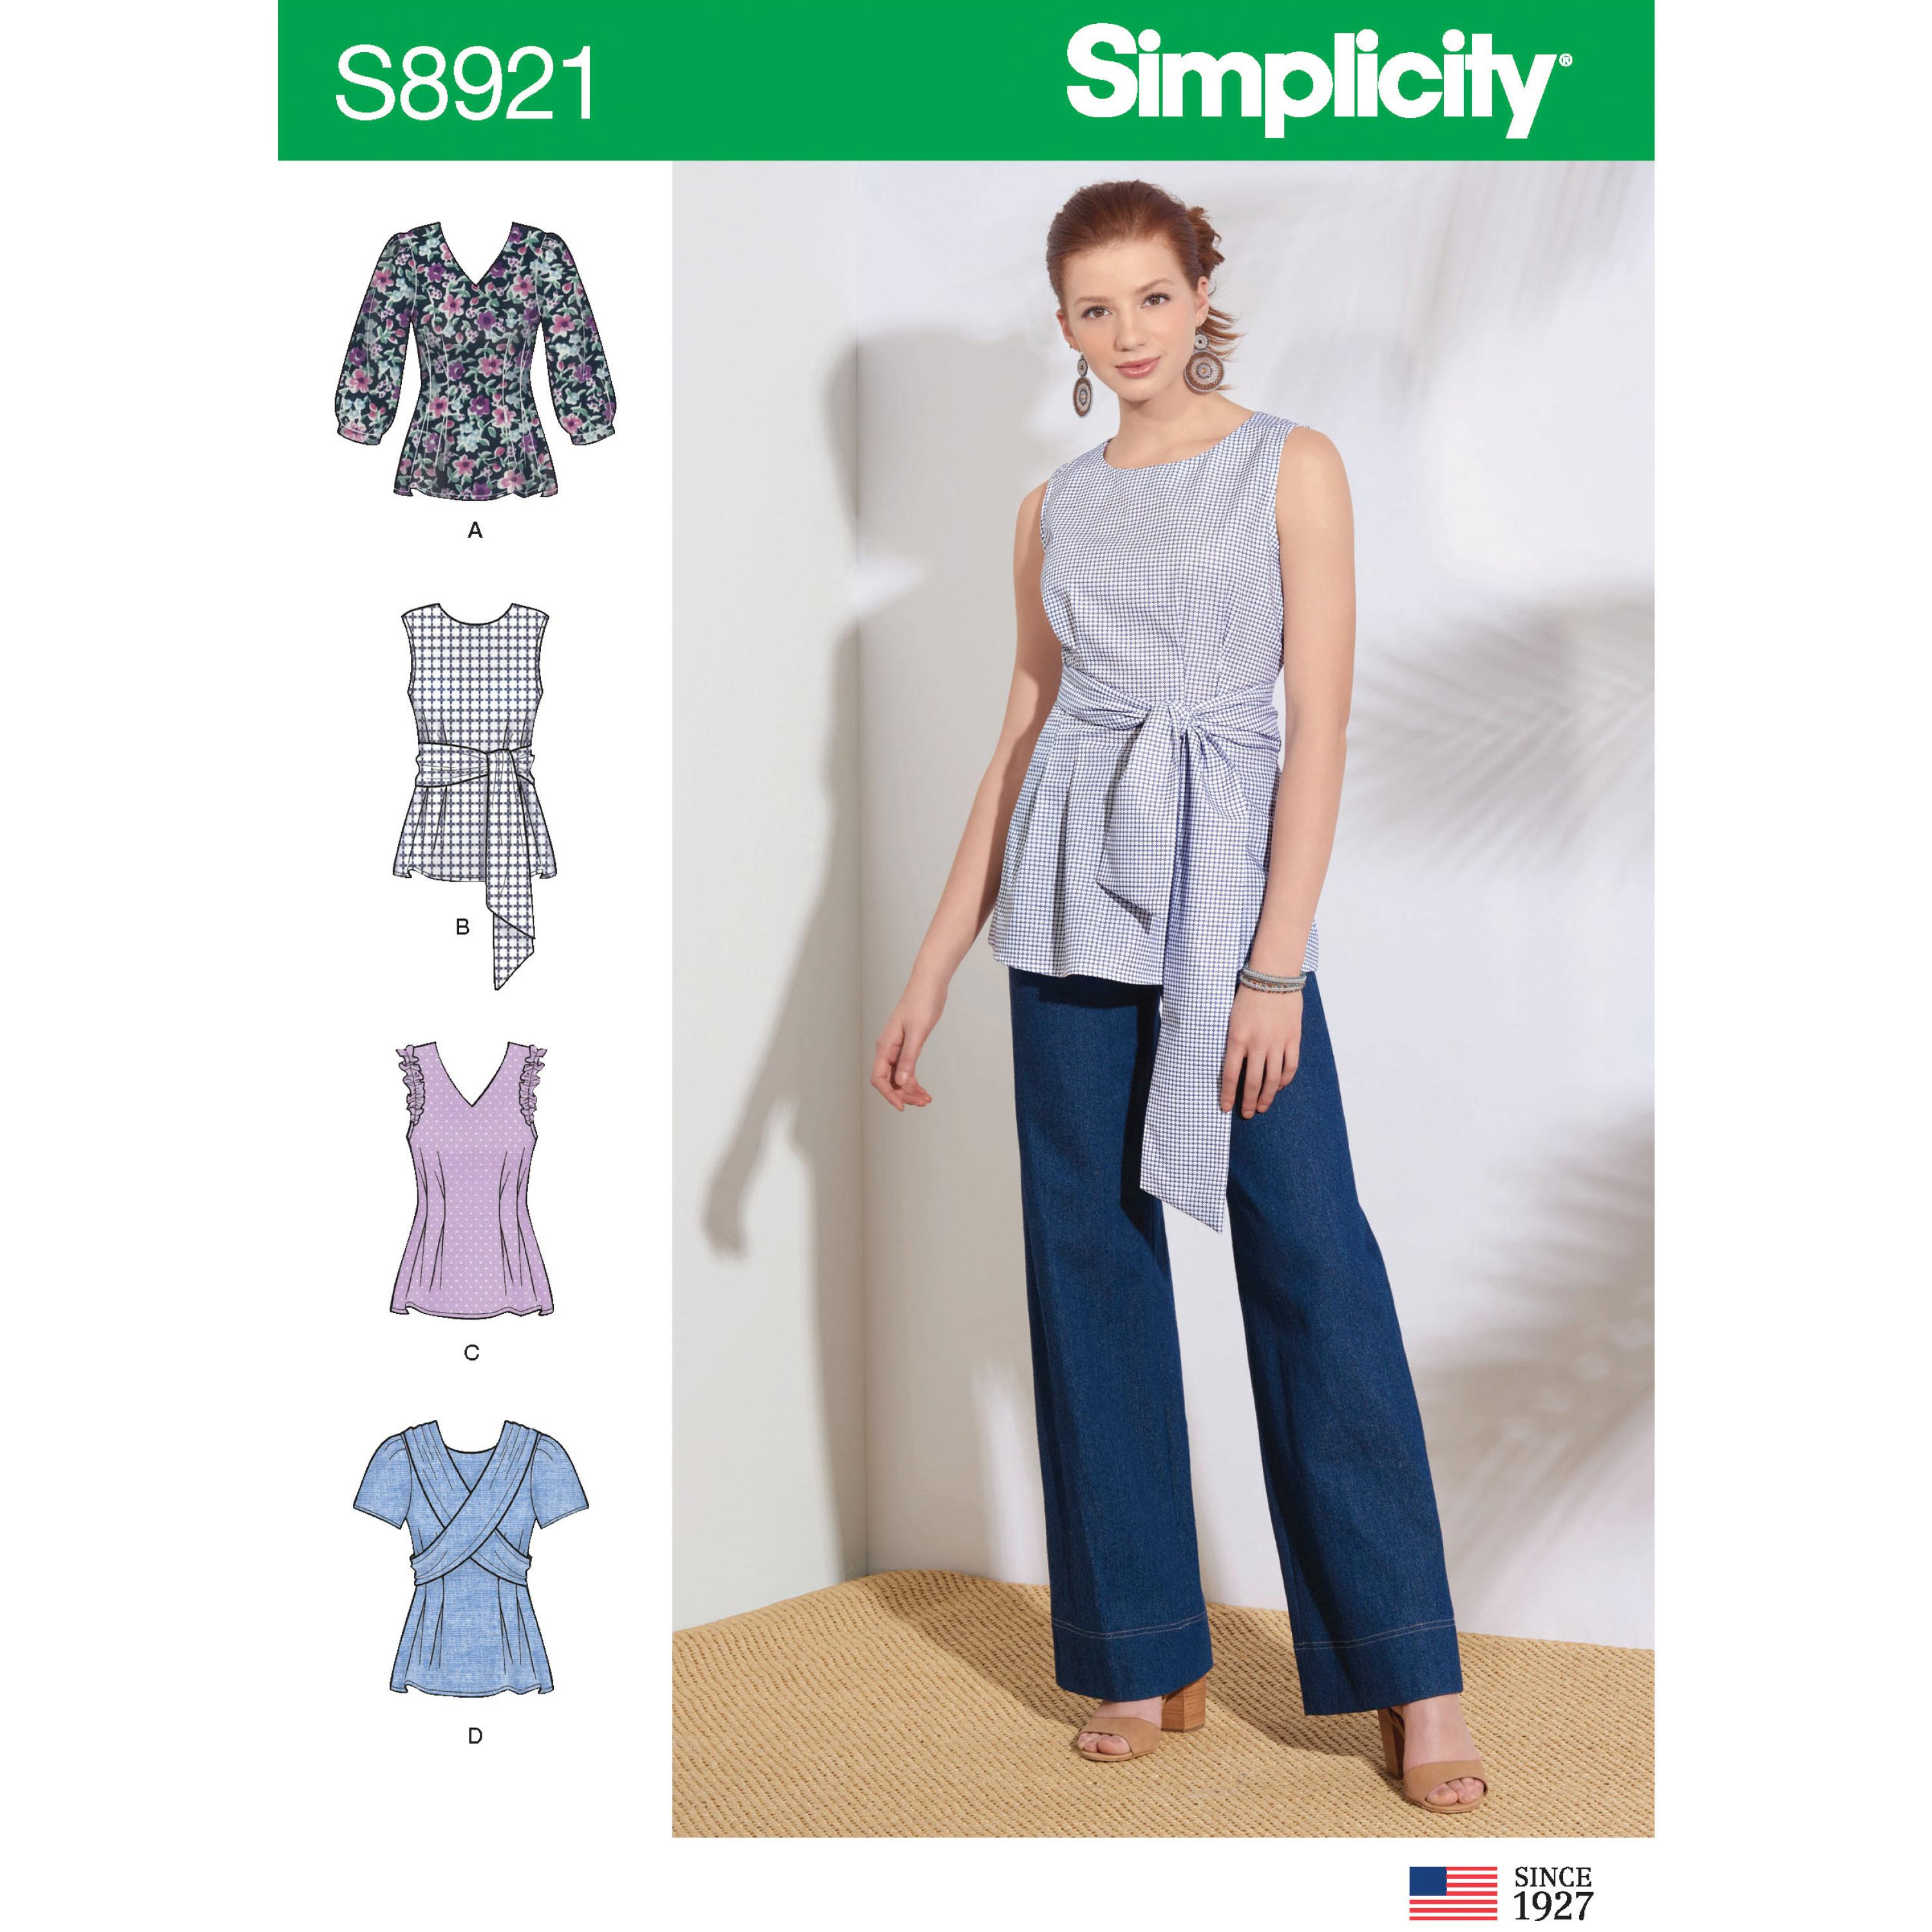 Simplicity S8921 Misses' Tops